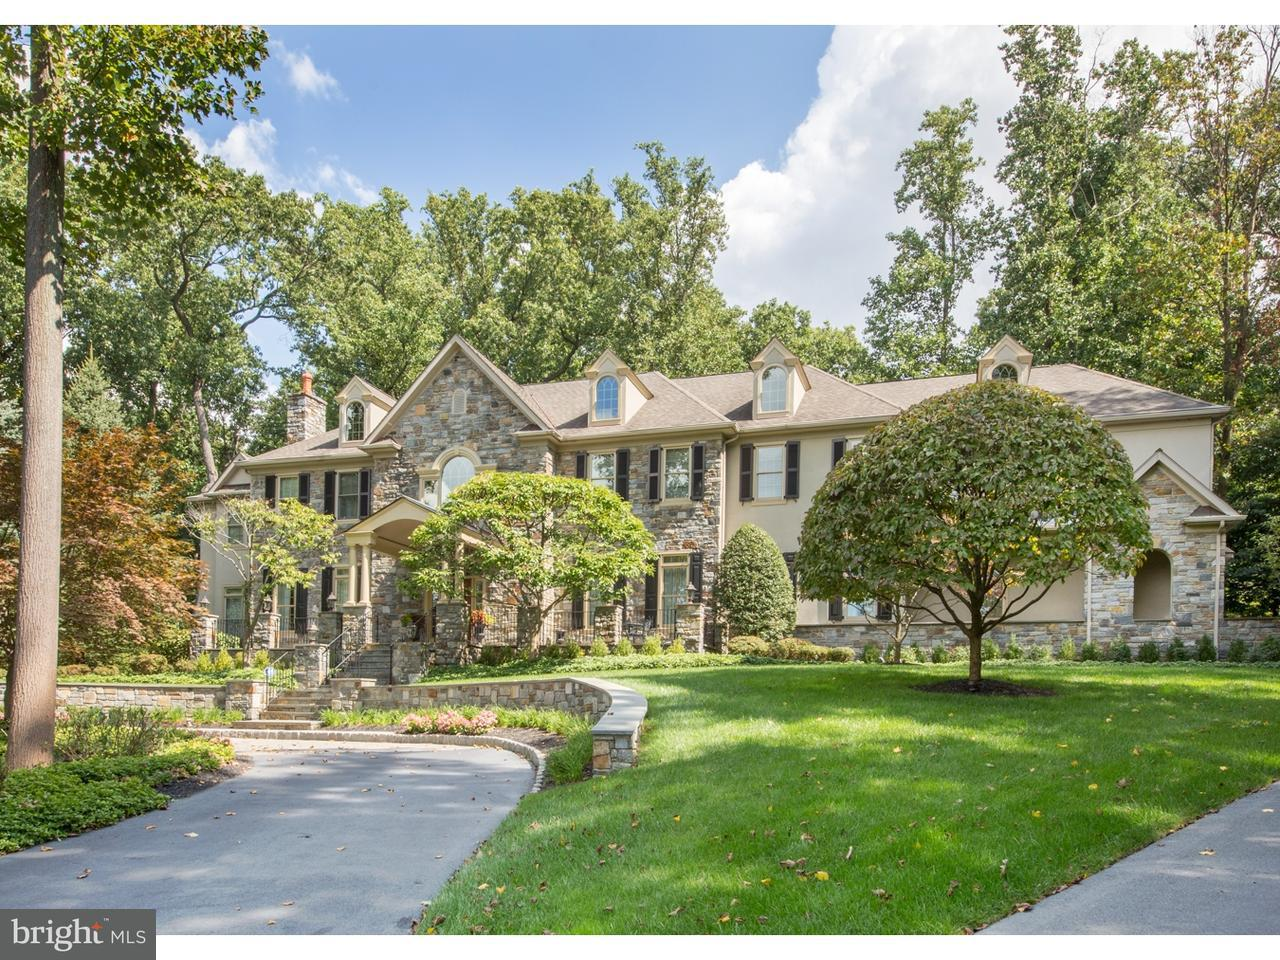 Single Family Home for Sale at 1000 RADCLIFF Lane Lower Gwynedd, Pennsylvania 19002 United States